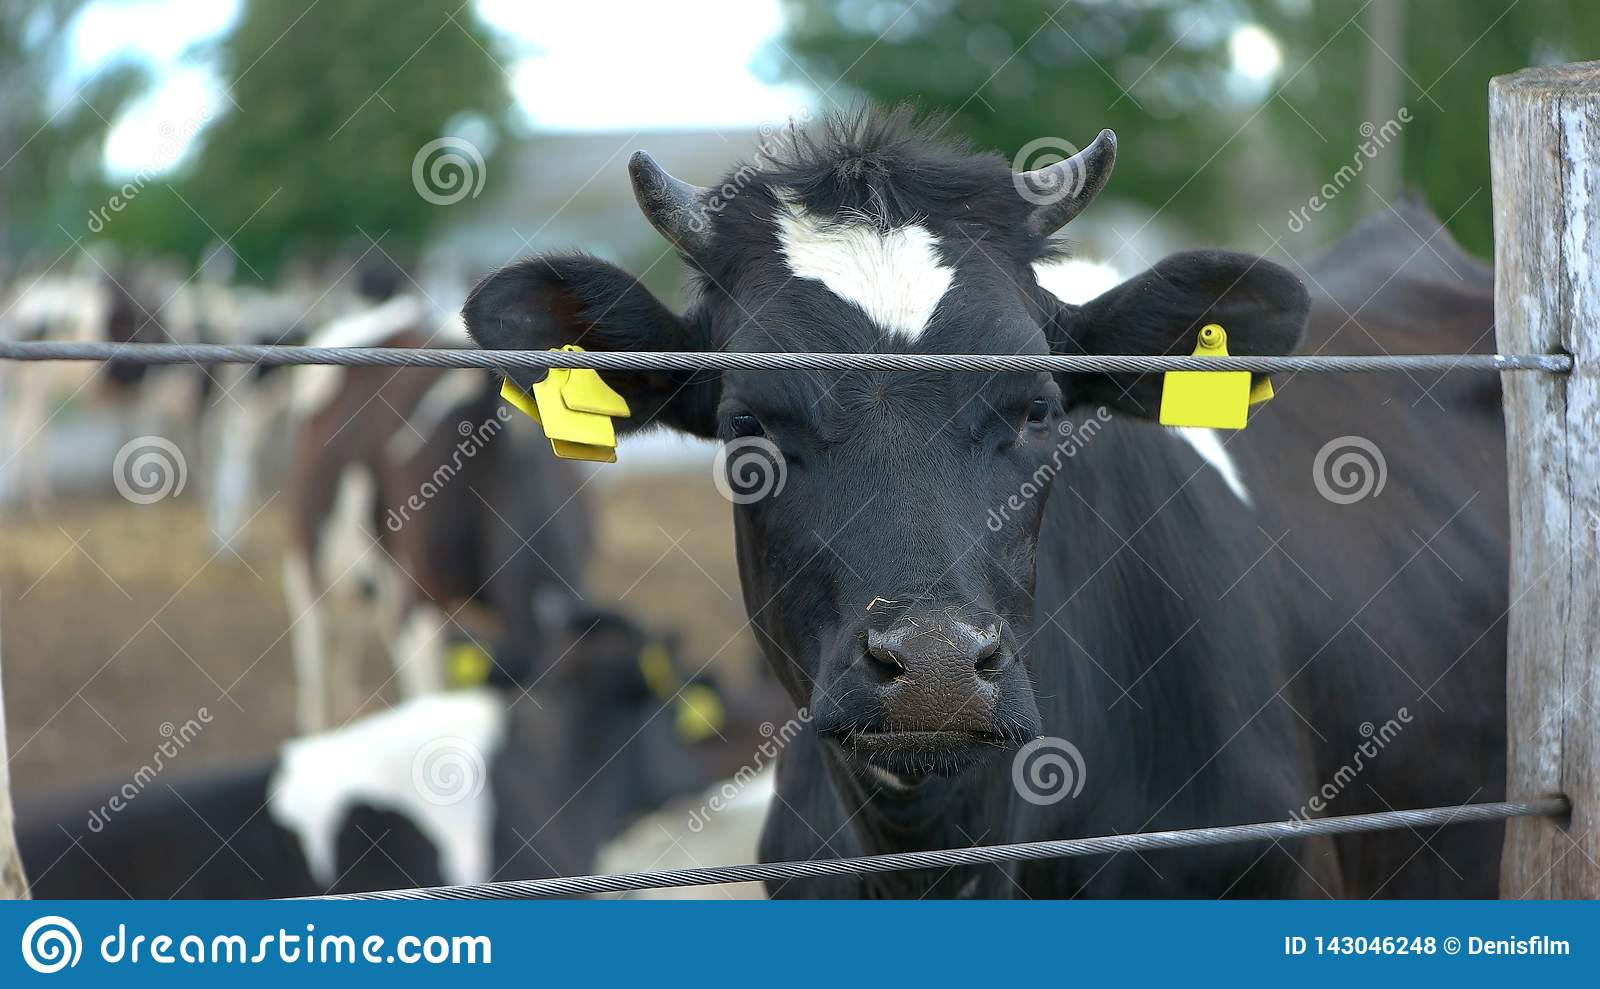 Cow near a fence.